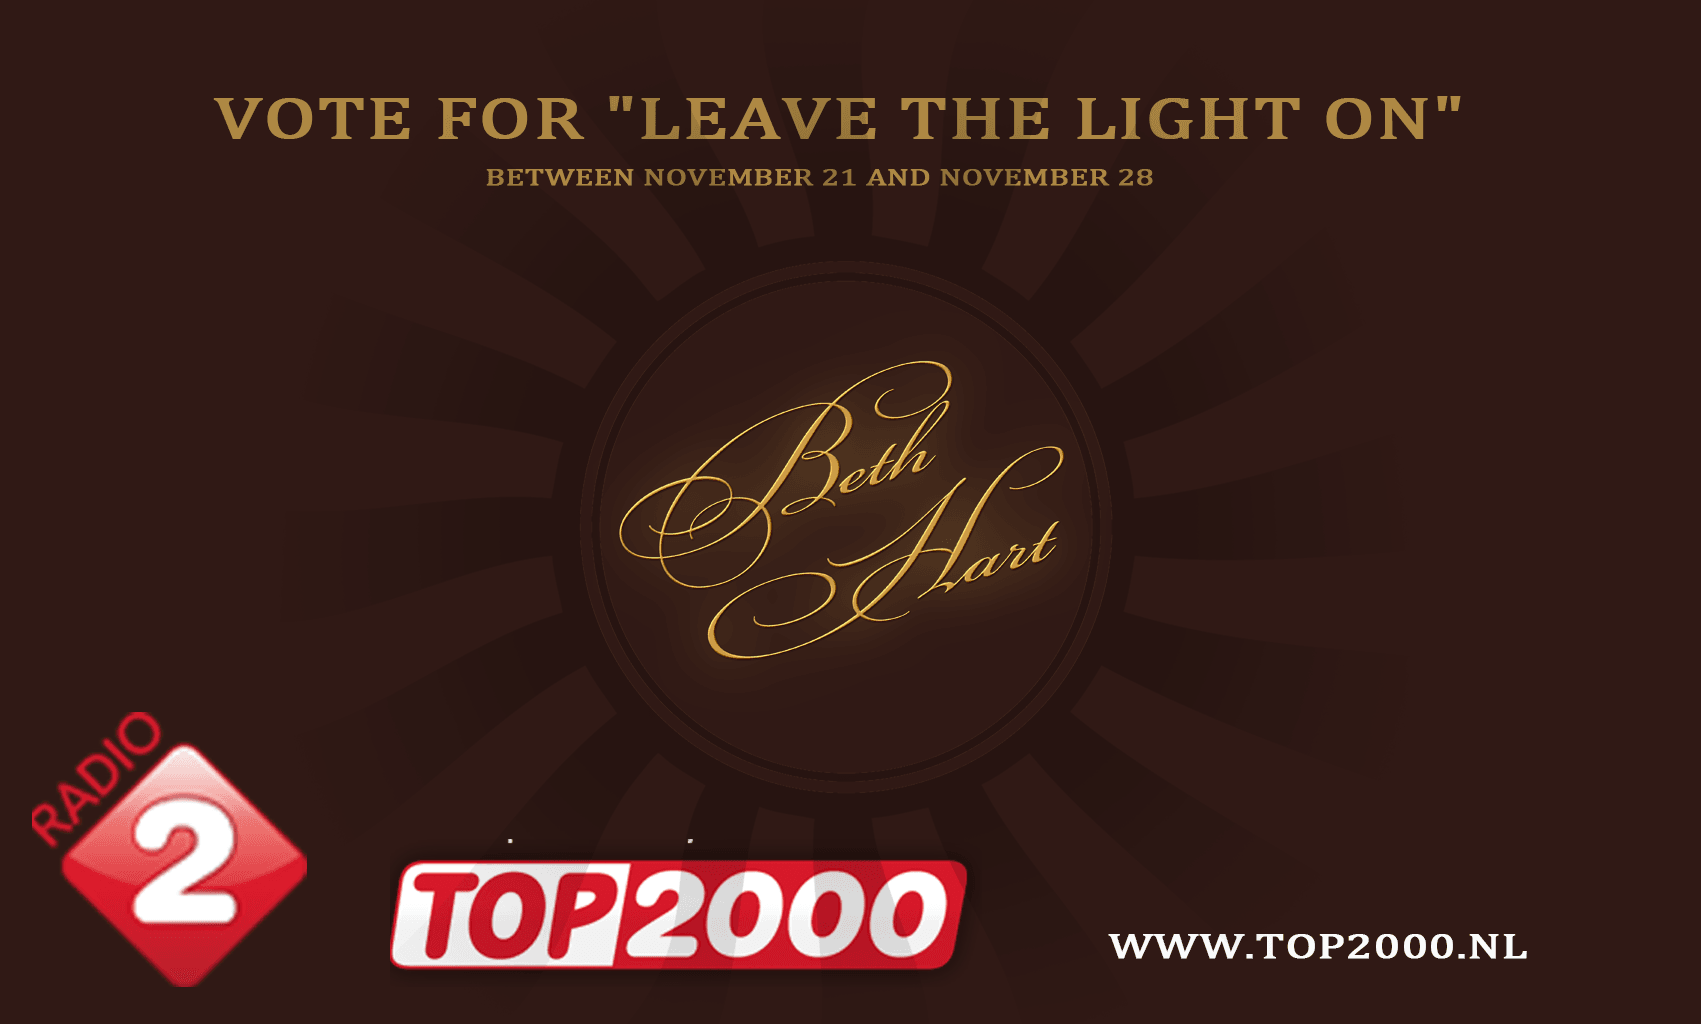 Vote for Beth Hart in Top 2000